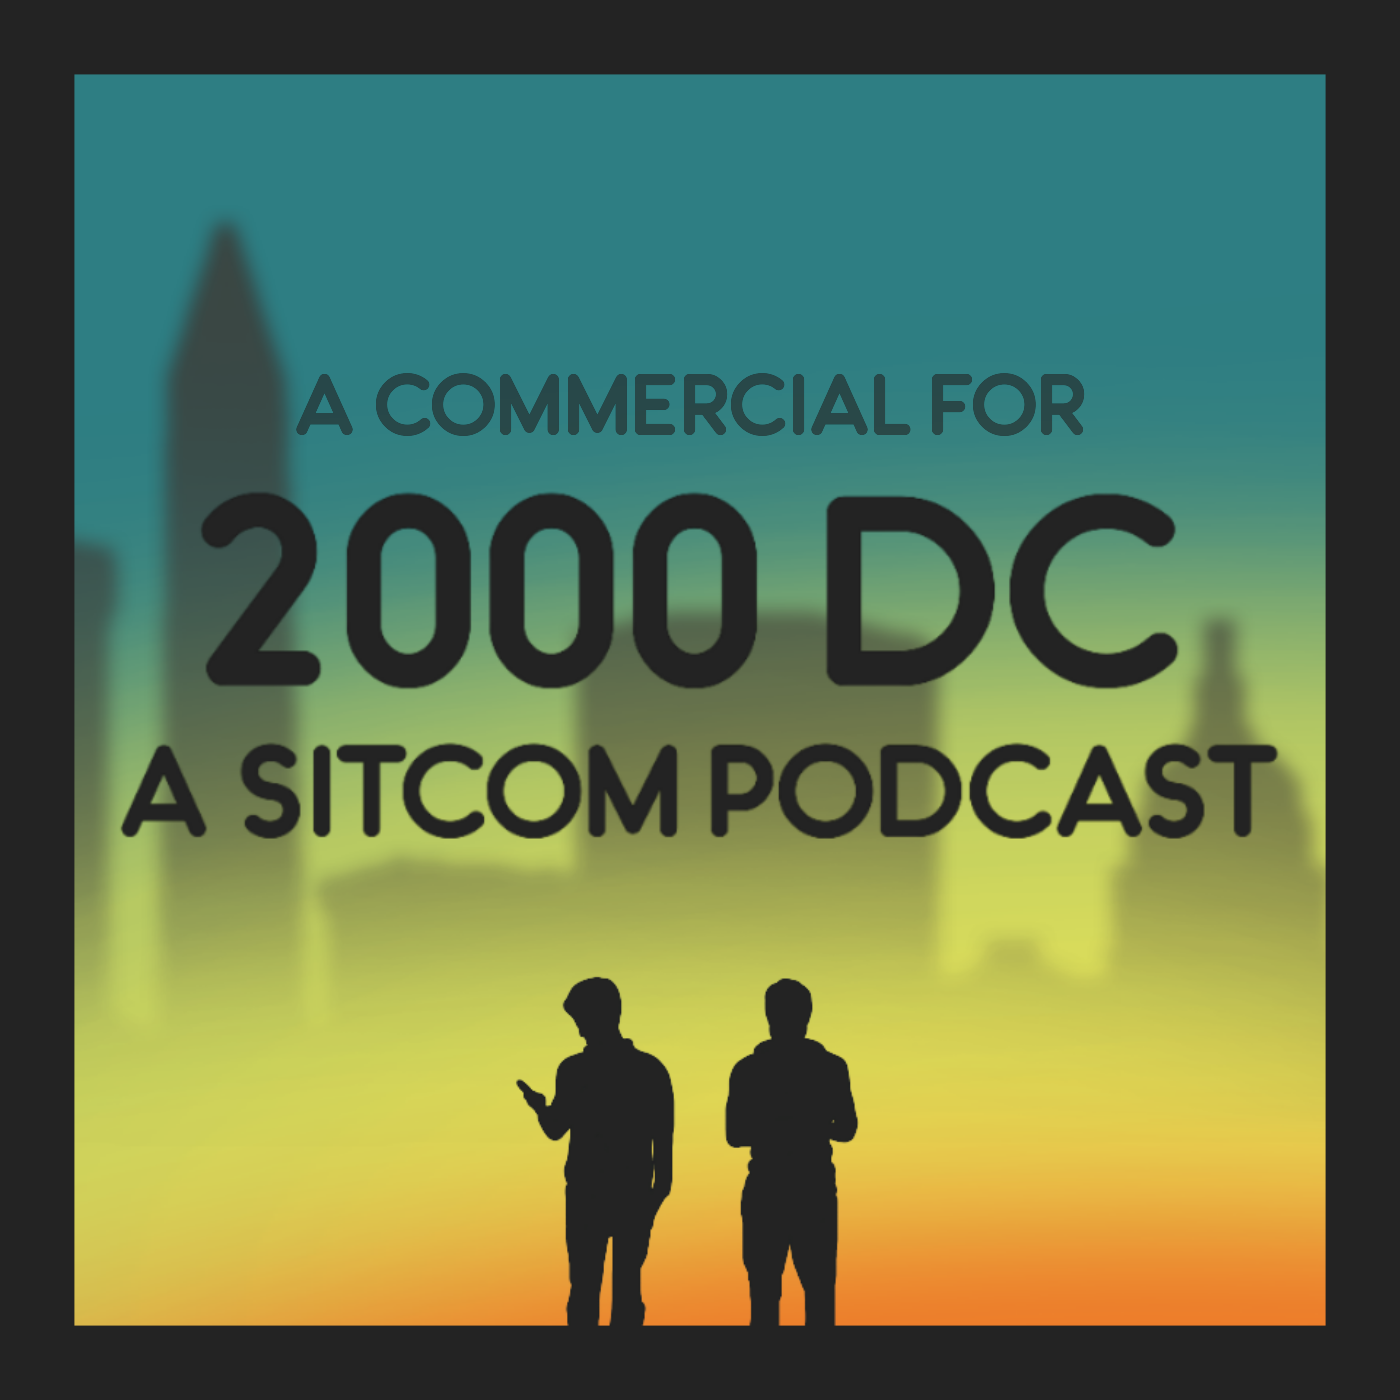 (A Commercial For) 2000 DC - The Signs